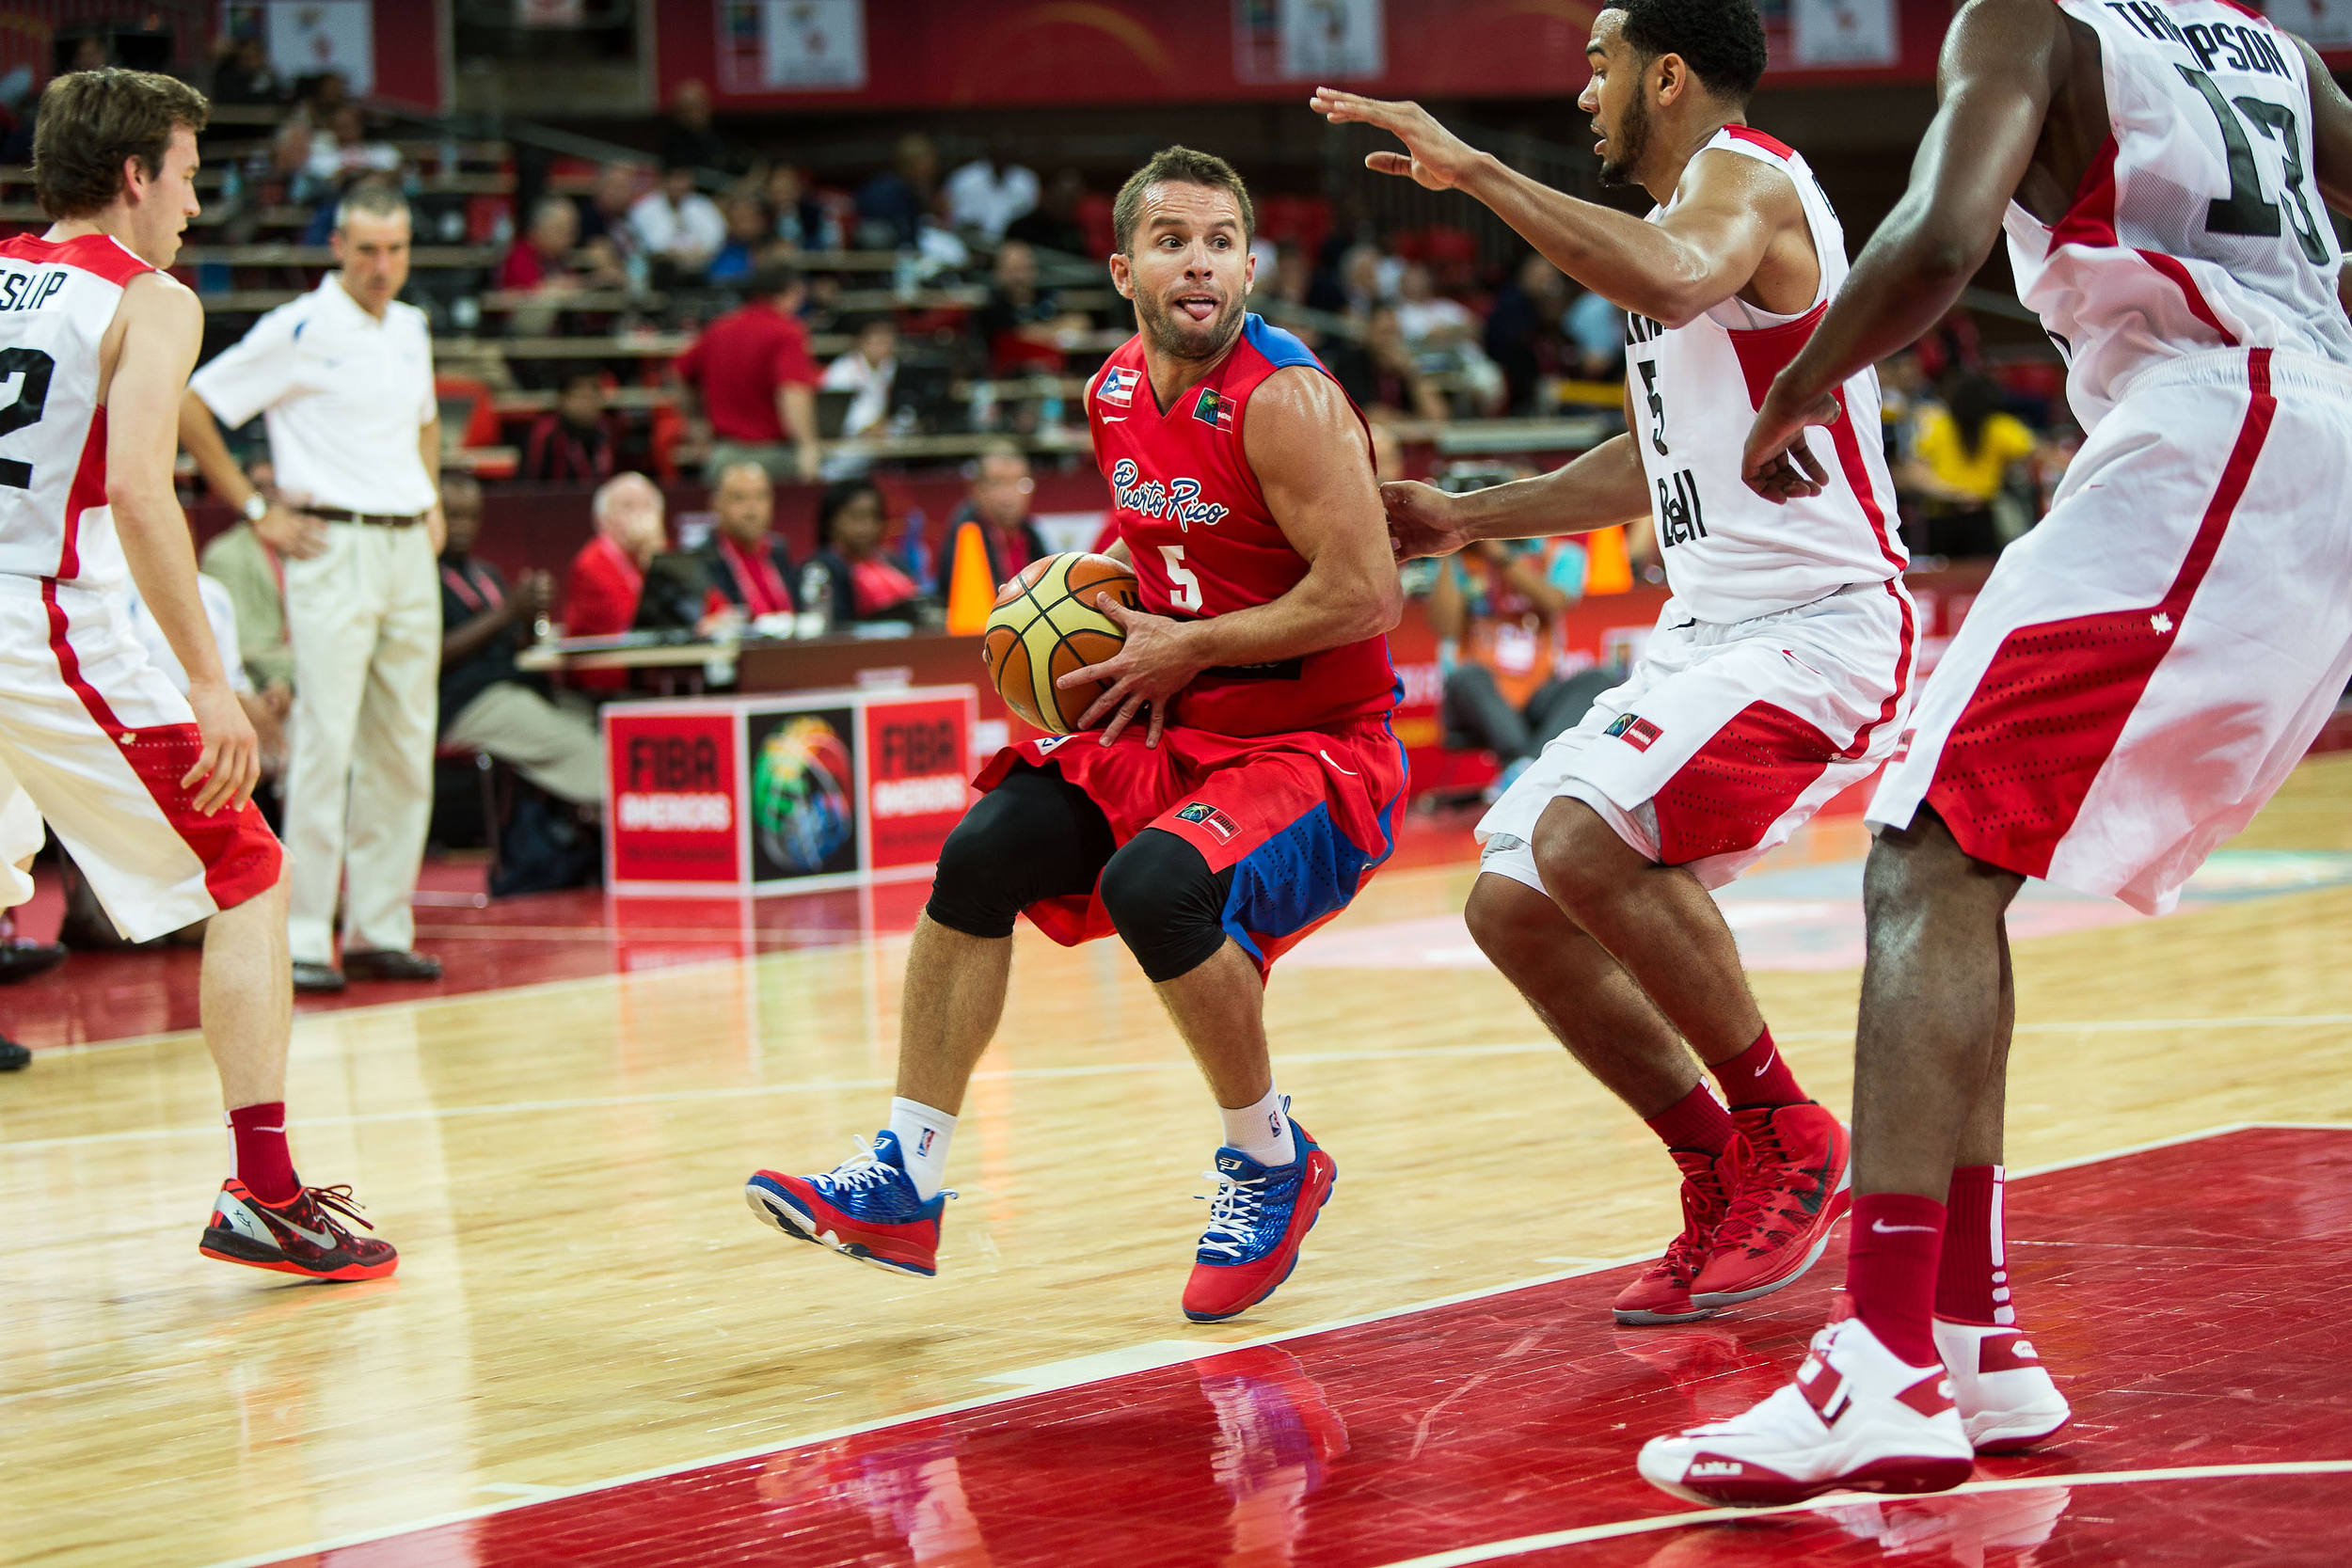 J.J. Barea (Puerto Rico) drives down the lane against Canada at the FIBA Americas Championship in Caracas, Venezuela